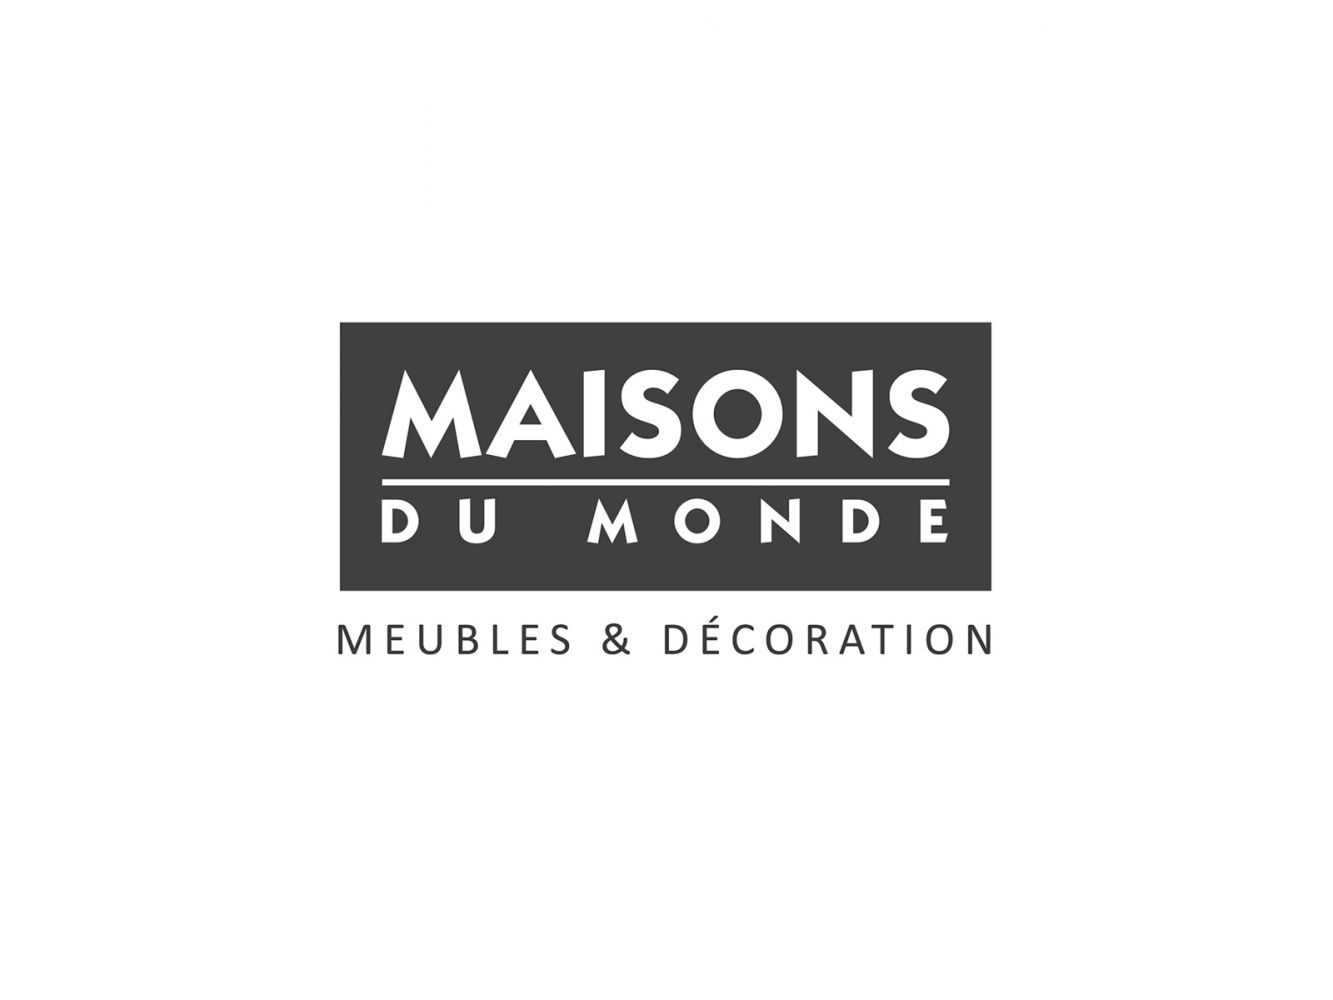 maisons du monde meuble et d coration marseille. Black Bedroom Furniture Sets. Home Design Ideas